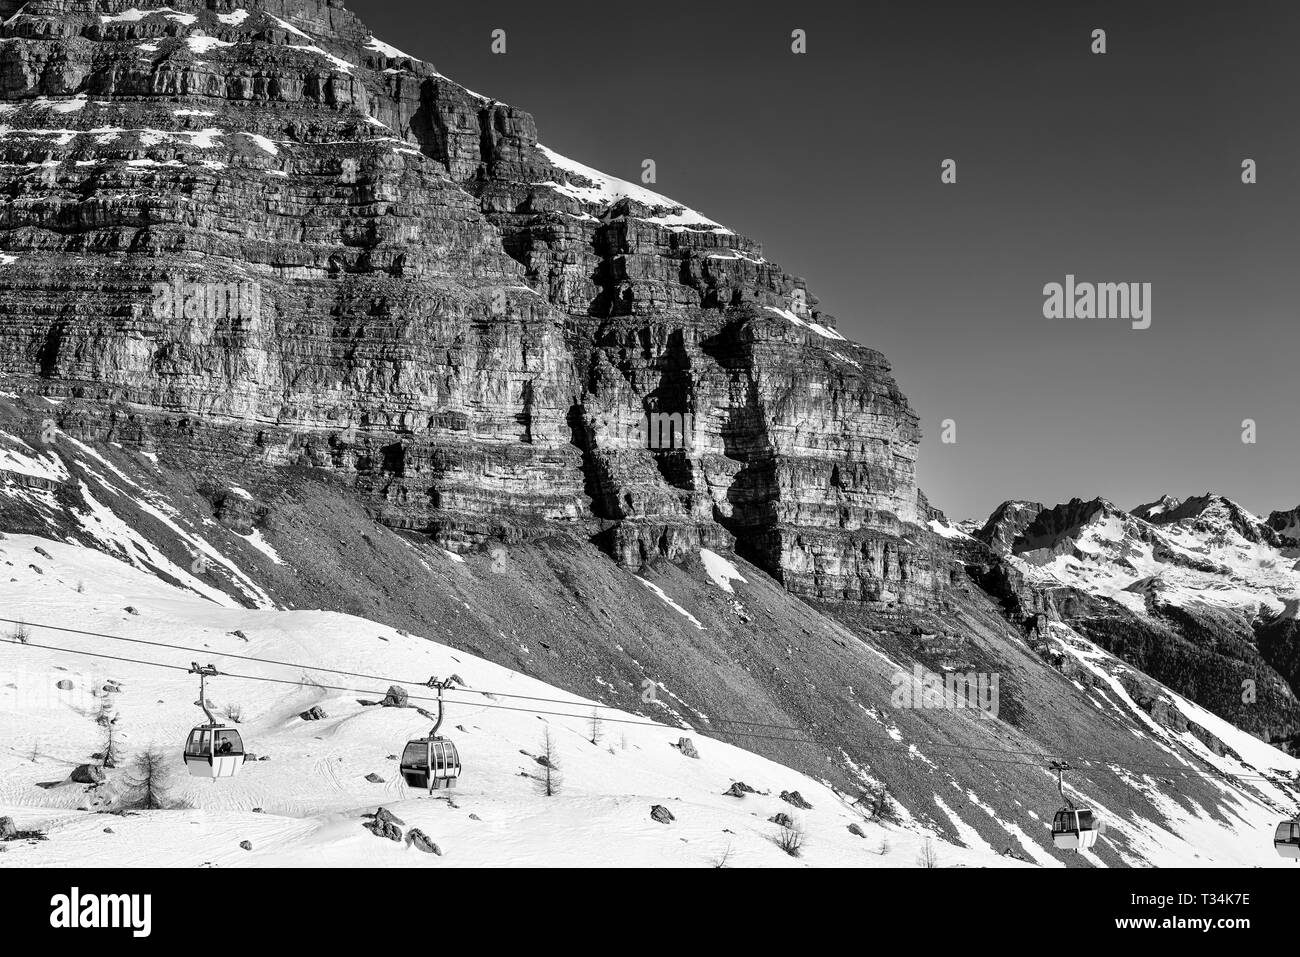 Black and white landscape. Cable car to sky resort. Massive rocks and mountains on the horizon. Winter holidays in the Alps Stock Photo